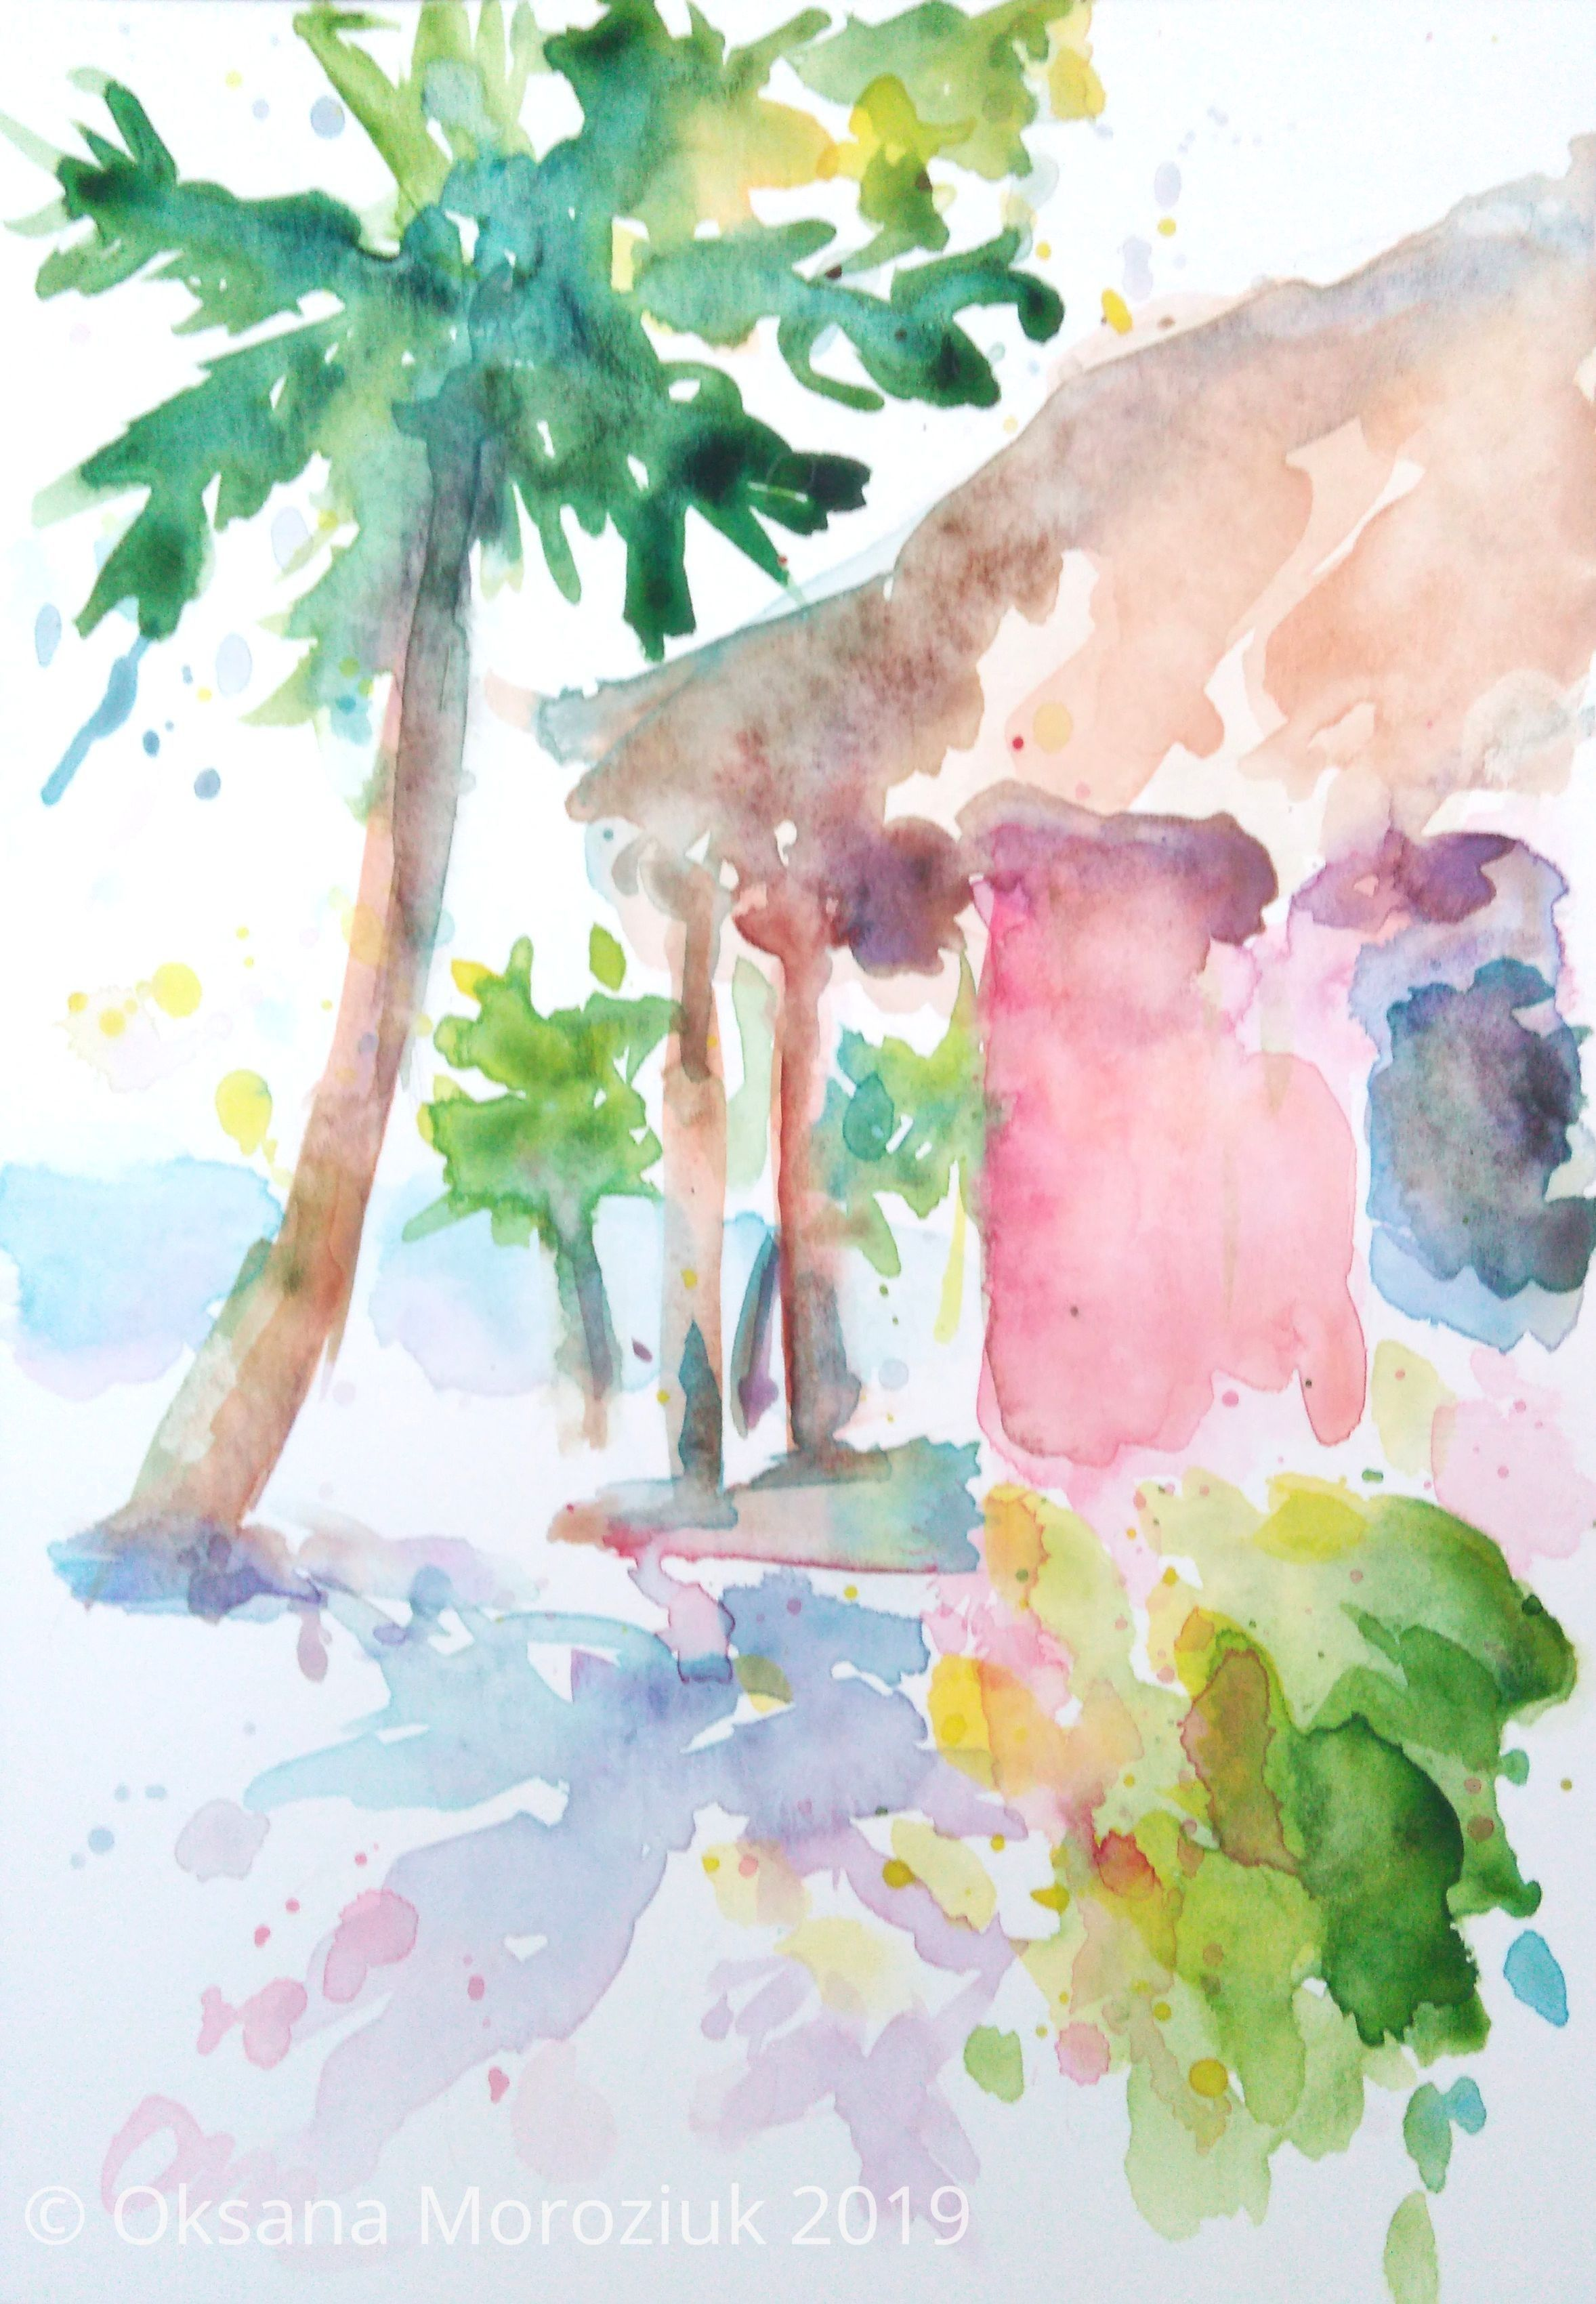 Hawaii Beach Watercolor Painting Original Small Art Tropical